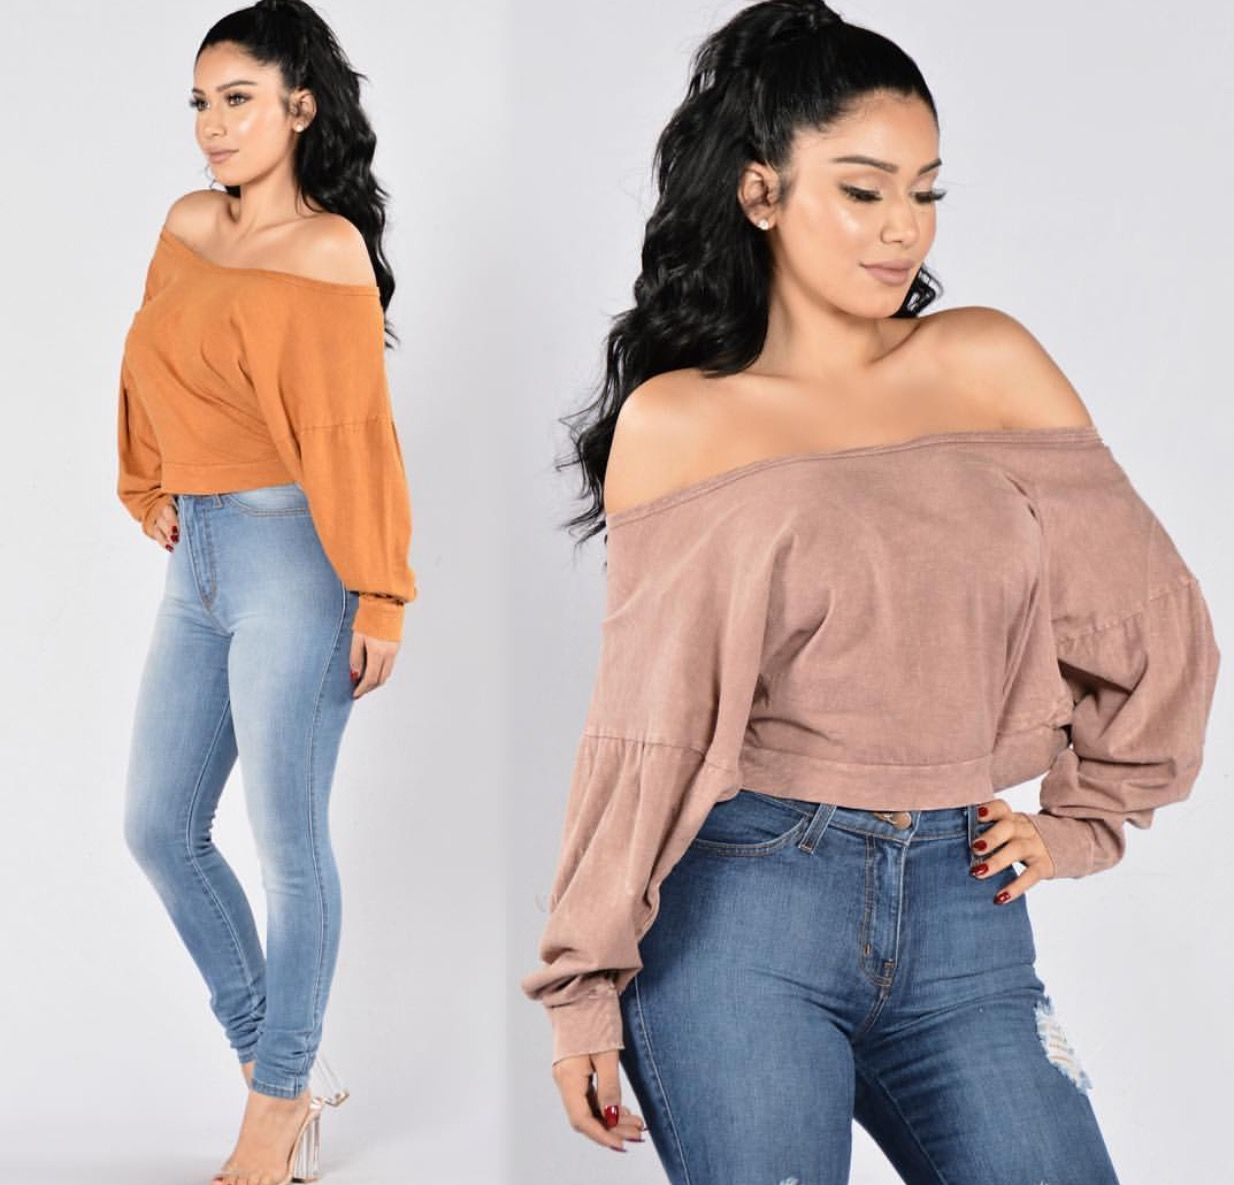 Fashion Nova Outfit Fashion Nova Outfits Fashion Casual Dress Outfits